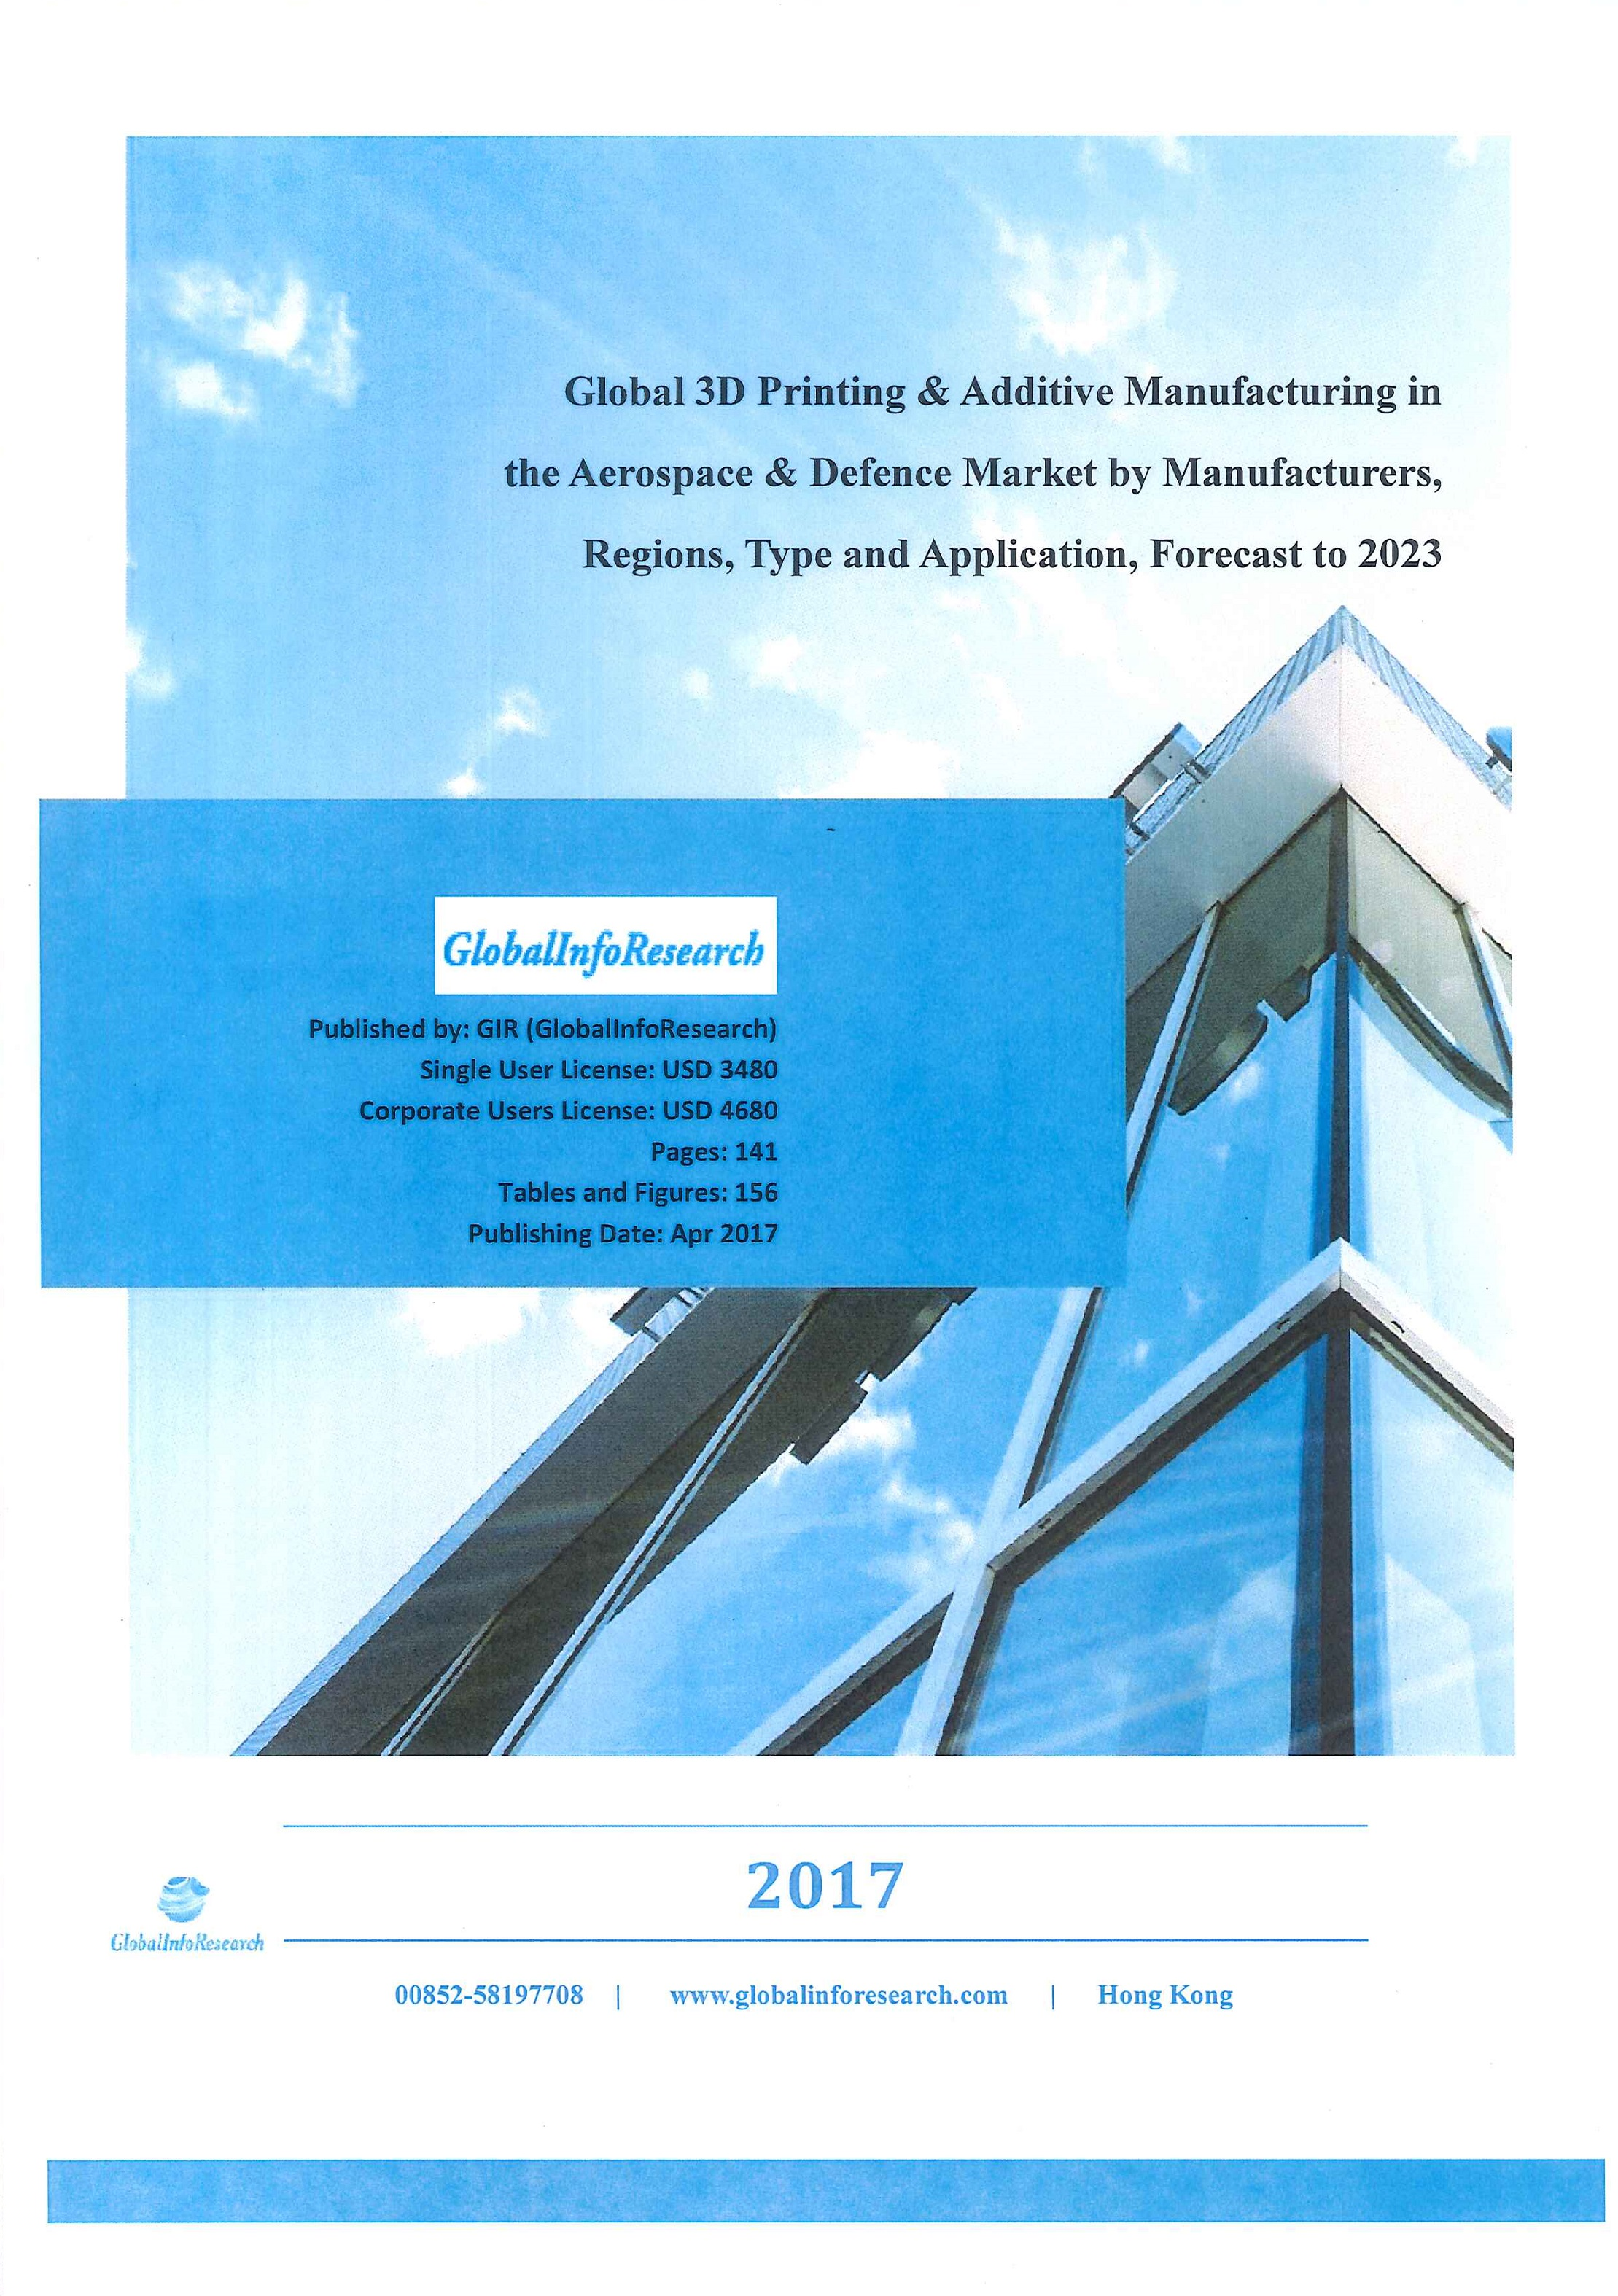 Global 3D printing & additive manufacturing in the aerospace & defence market by manufacturers, regions, type and application, forecast to 2023 [ebook]